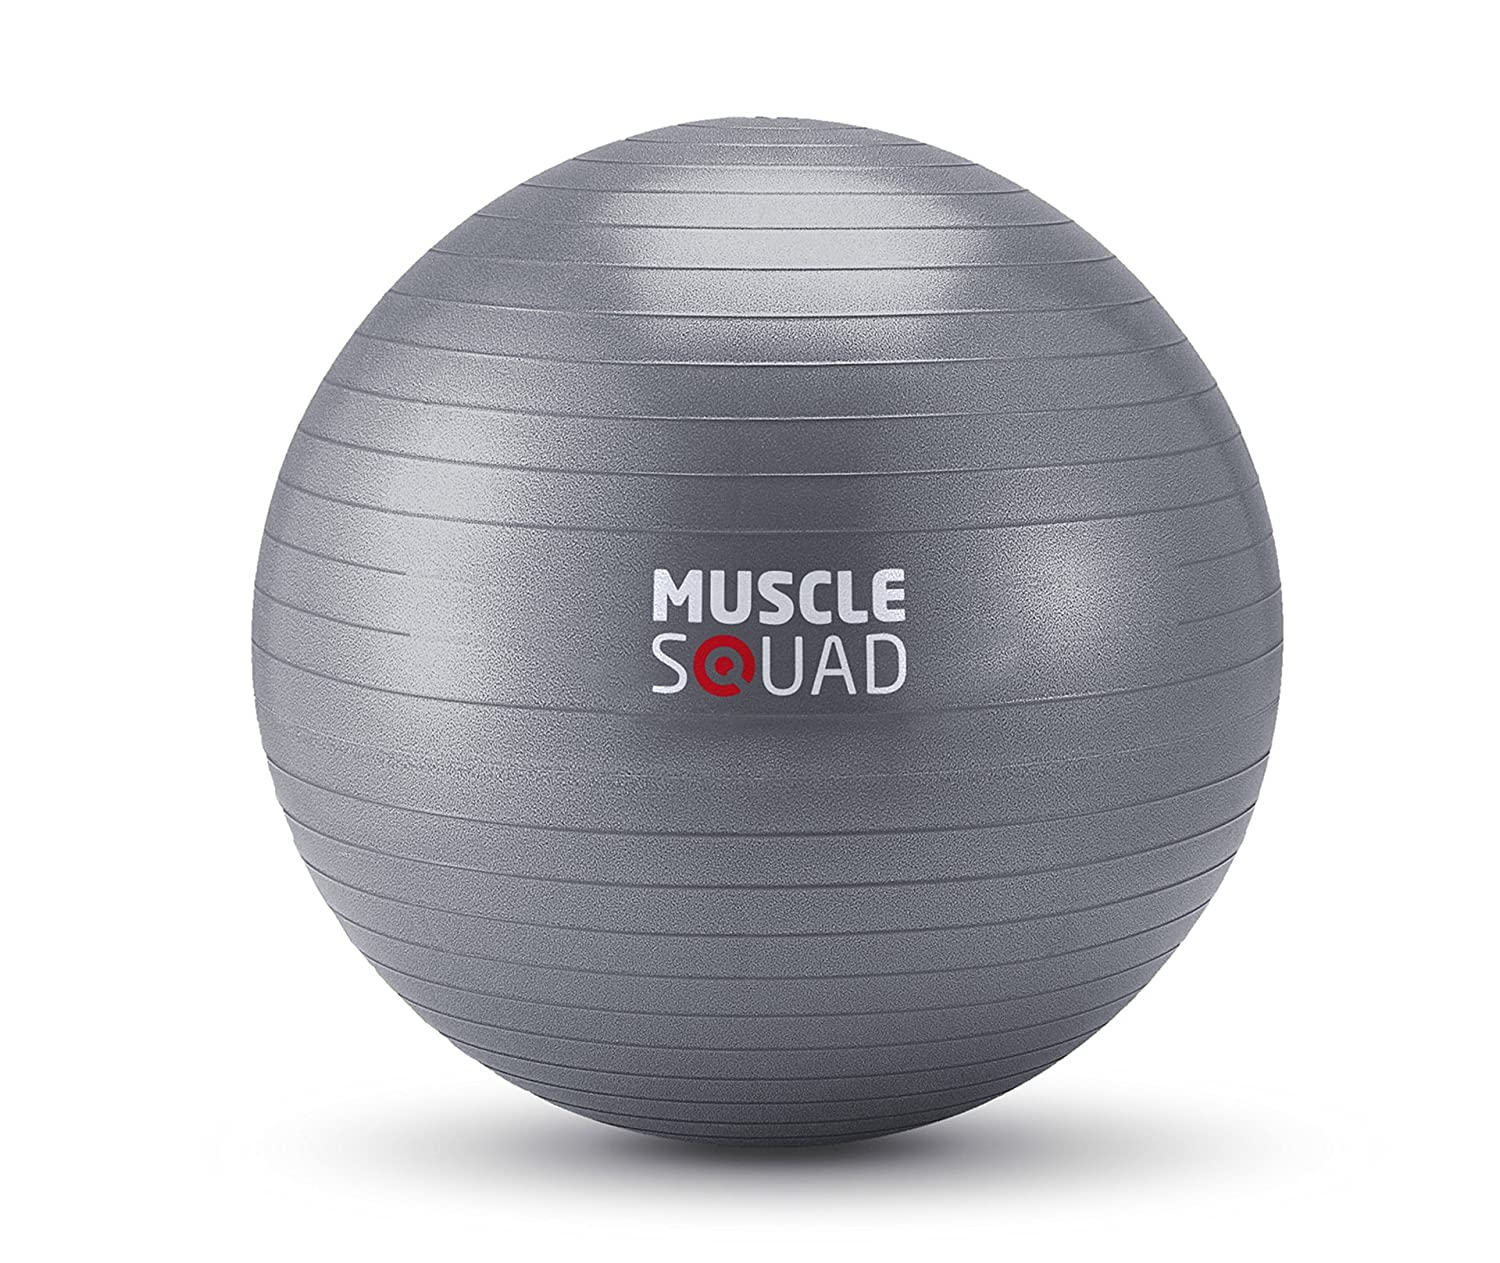 MuscleSquad 55cm Gym Ball – Heavy weight PVC Gym Ball – For Stability, Core Training and Strength For Home Or Gym Use - Free Exercise Chart Included MuscleSquad Limited